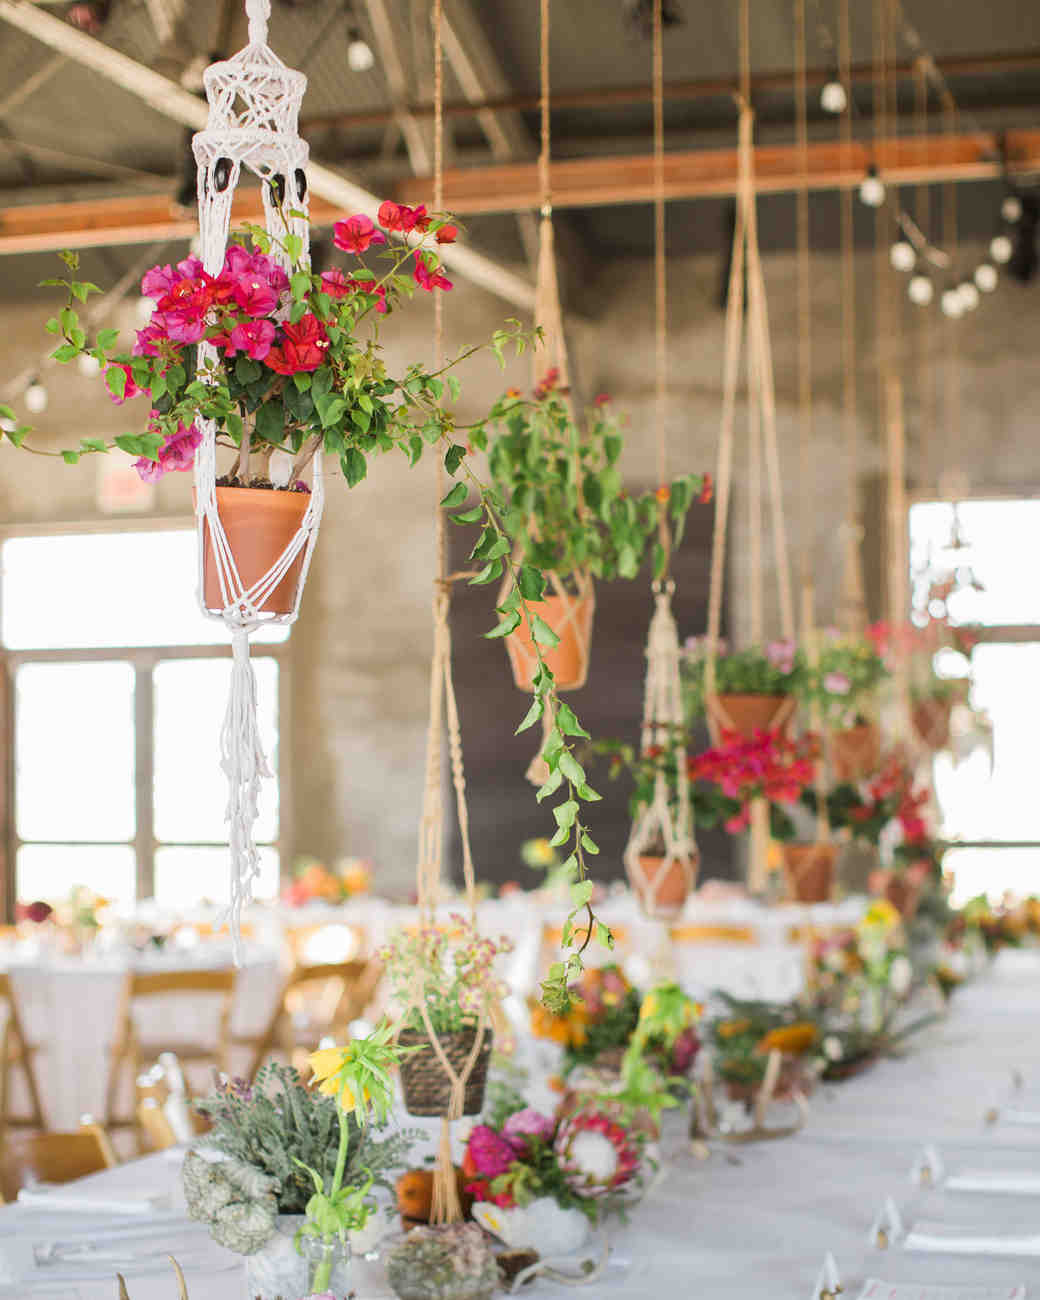 Ideas For Wedding Flower Arrangements: Boho-Chic Wedding Ideas For Free-Spirited Brides And